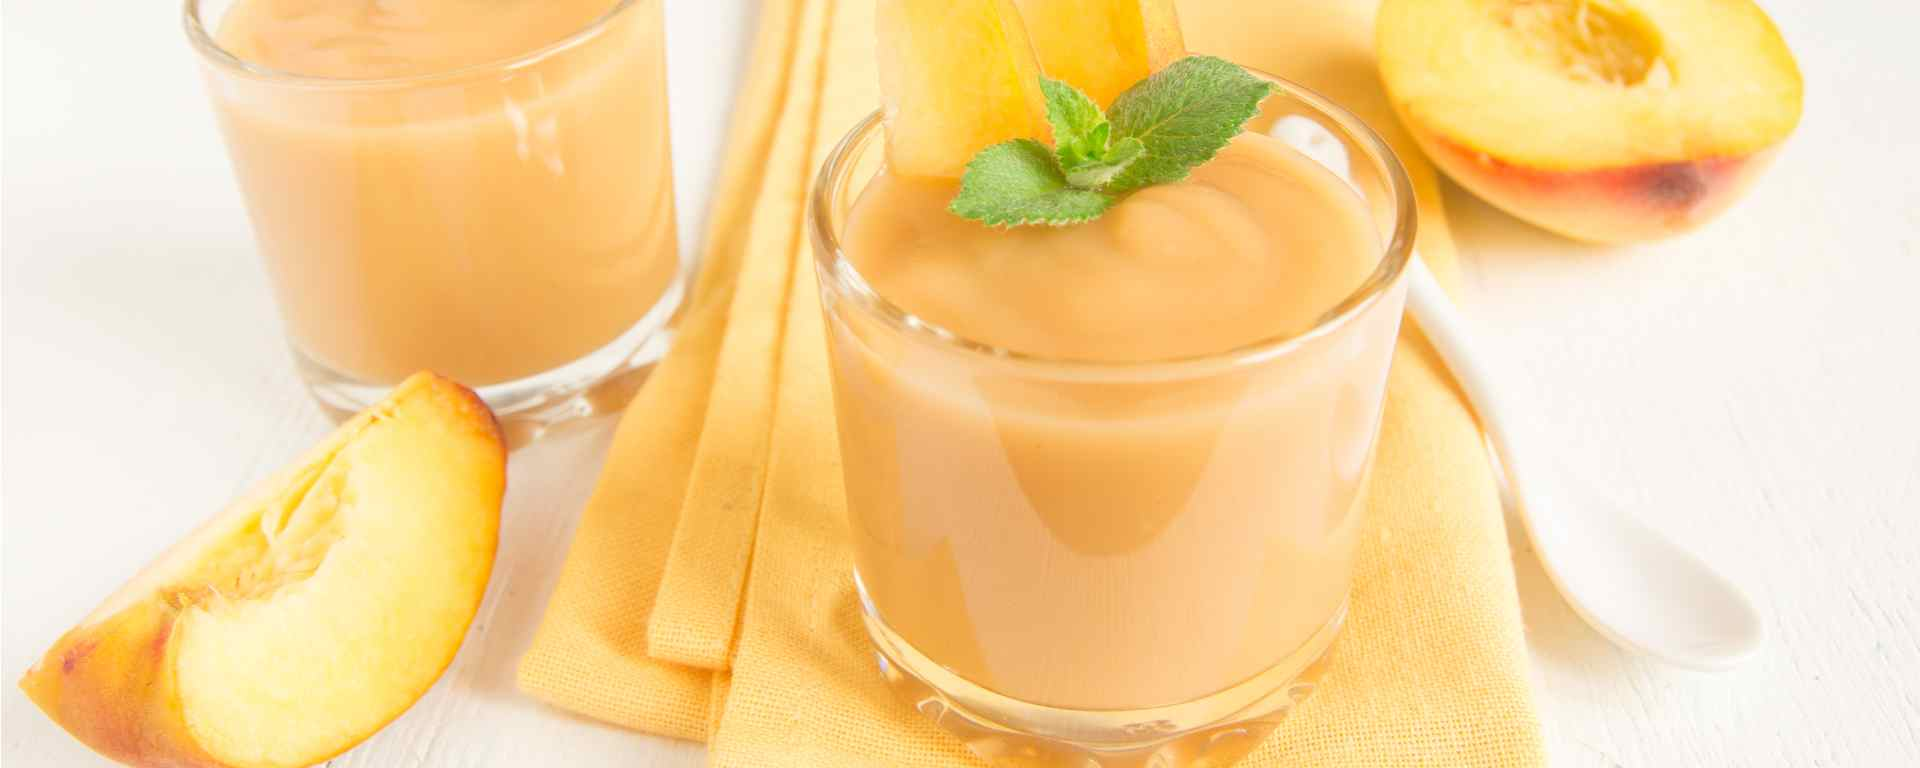 Photo for - Fuzzy Navel Smoothie